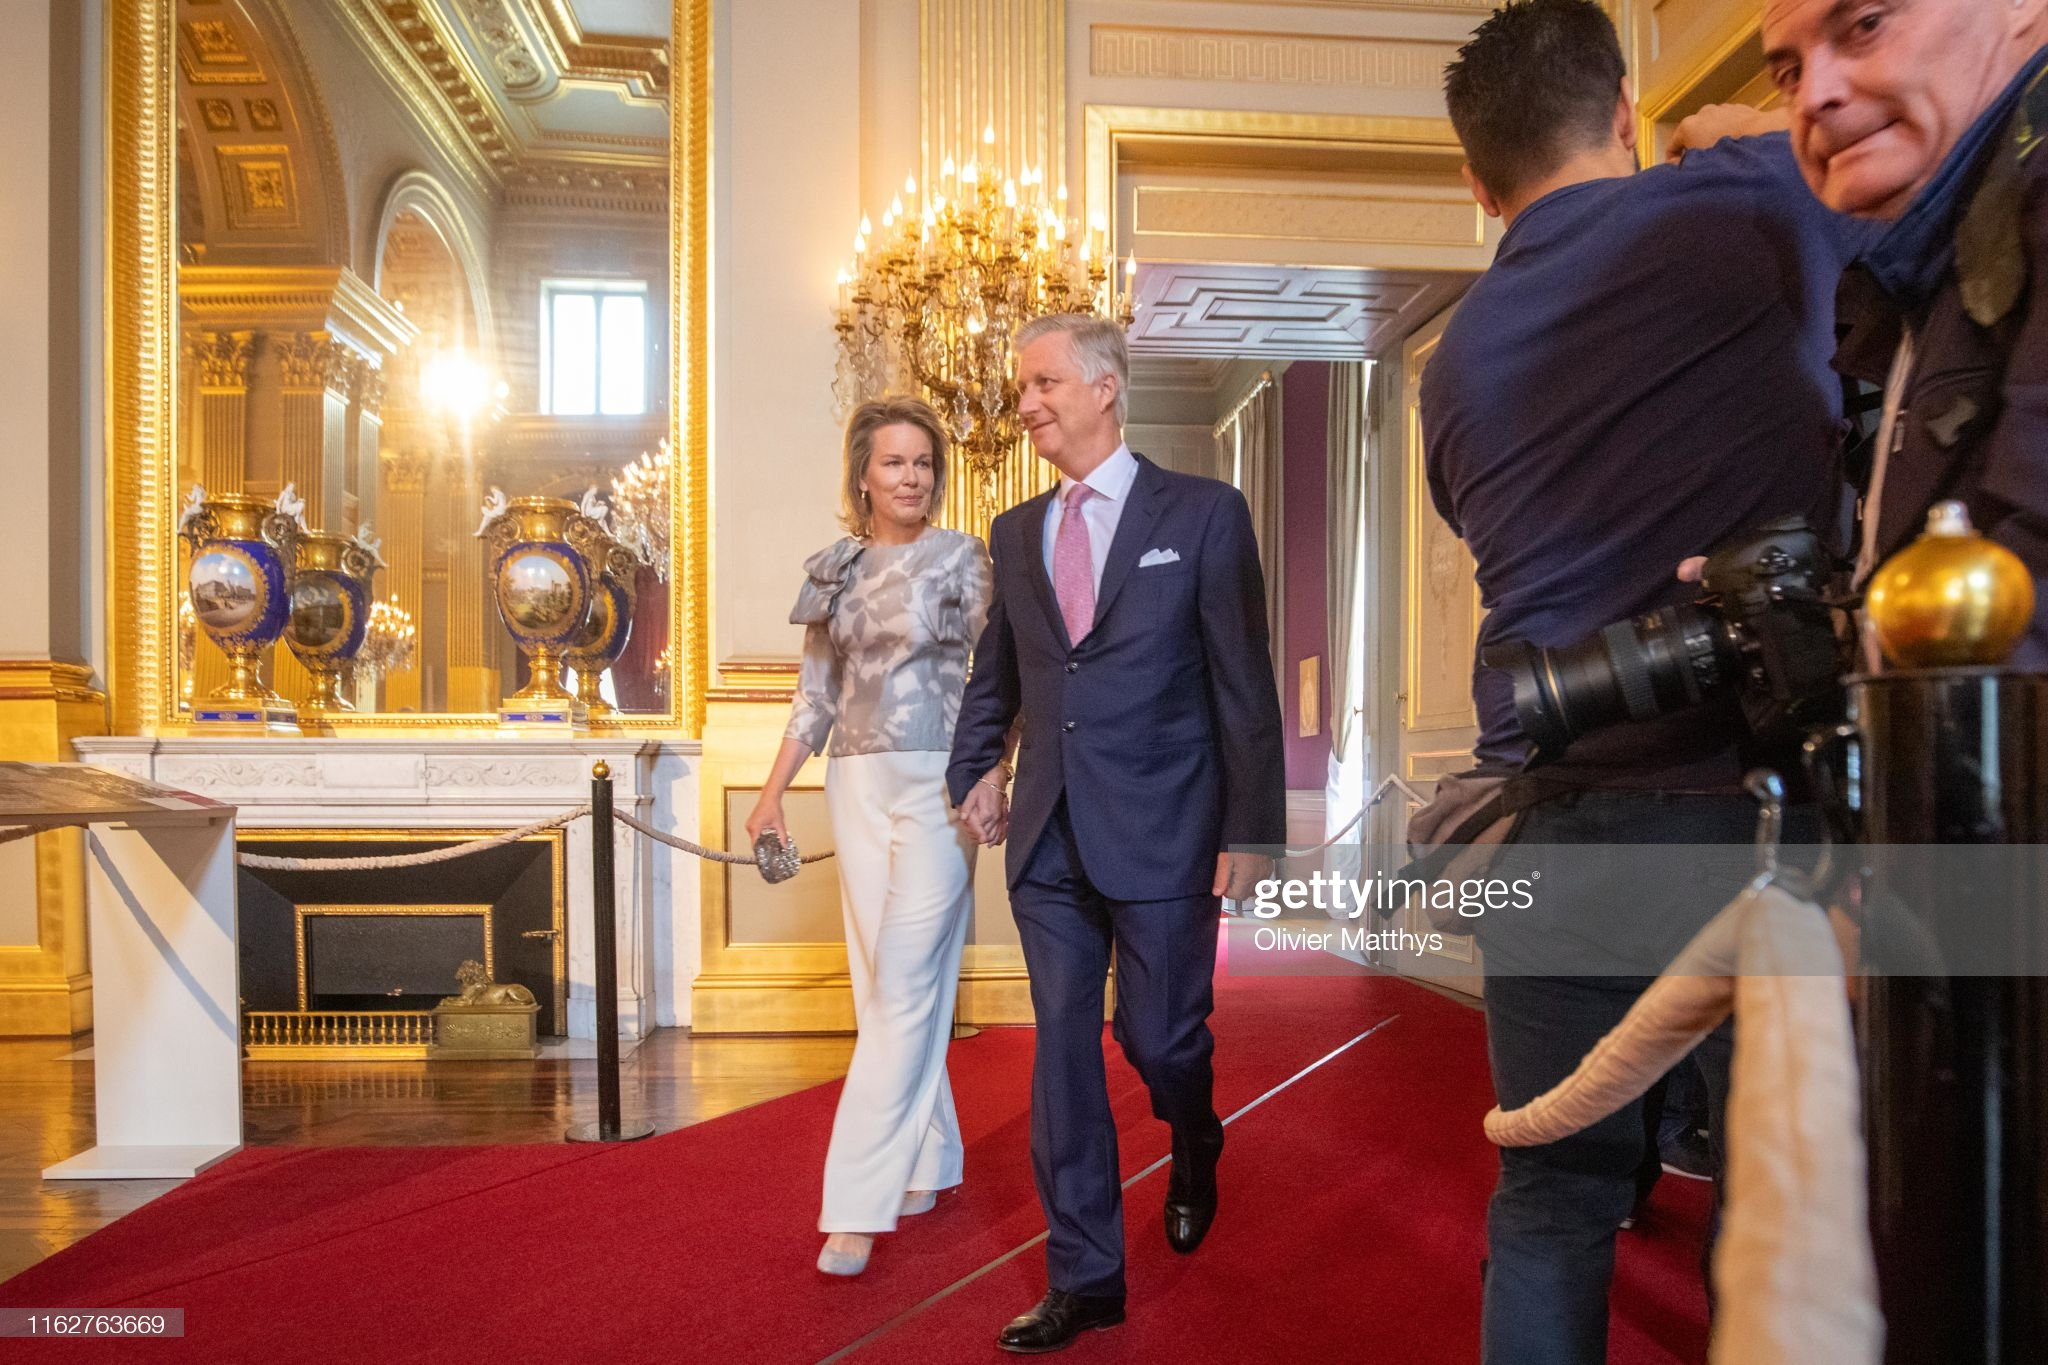 CASA REAL BELGA - Página 54 King-philippe-of-belgium-and-queen-mathilde-attend-the-summer-at-the-picture-id1162763669?s=2048x2048